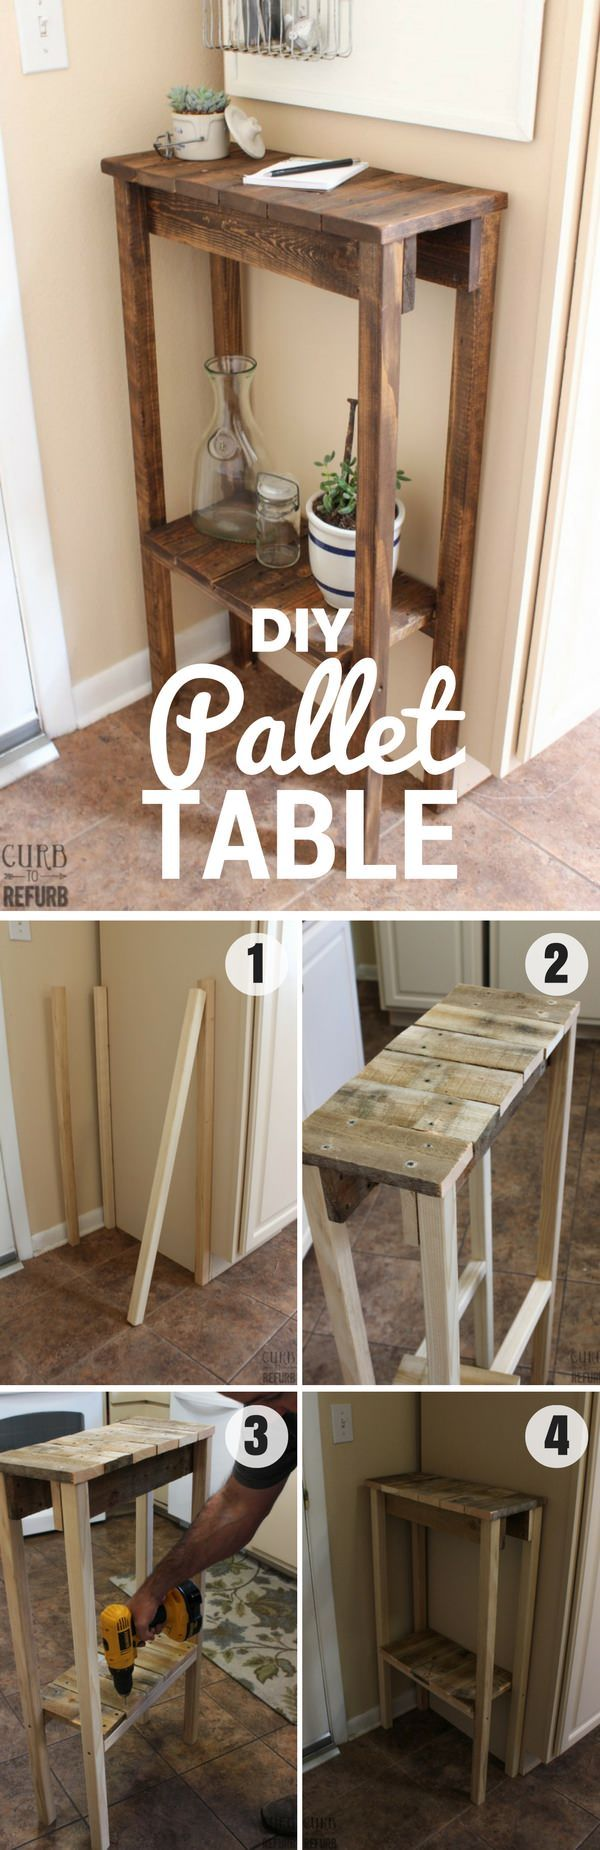 Weve picked 15 amazing but still easy diy wood craft projects for weve picked 15 amazing but still easy diy wood craft projects for home decor so that you can build something unique yourself solutioingenieria